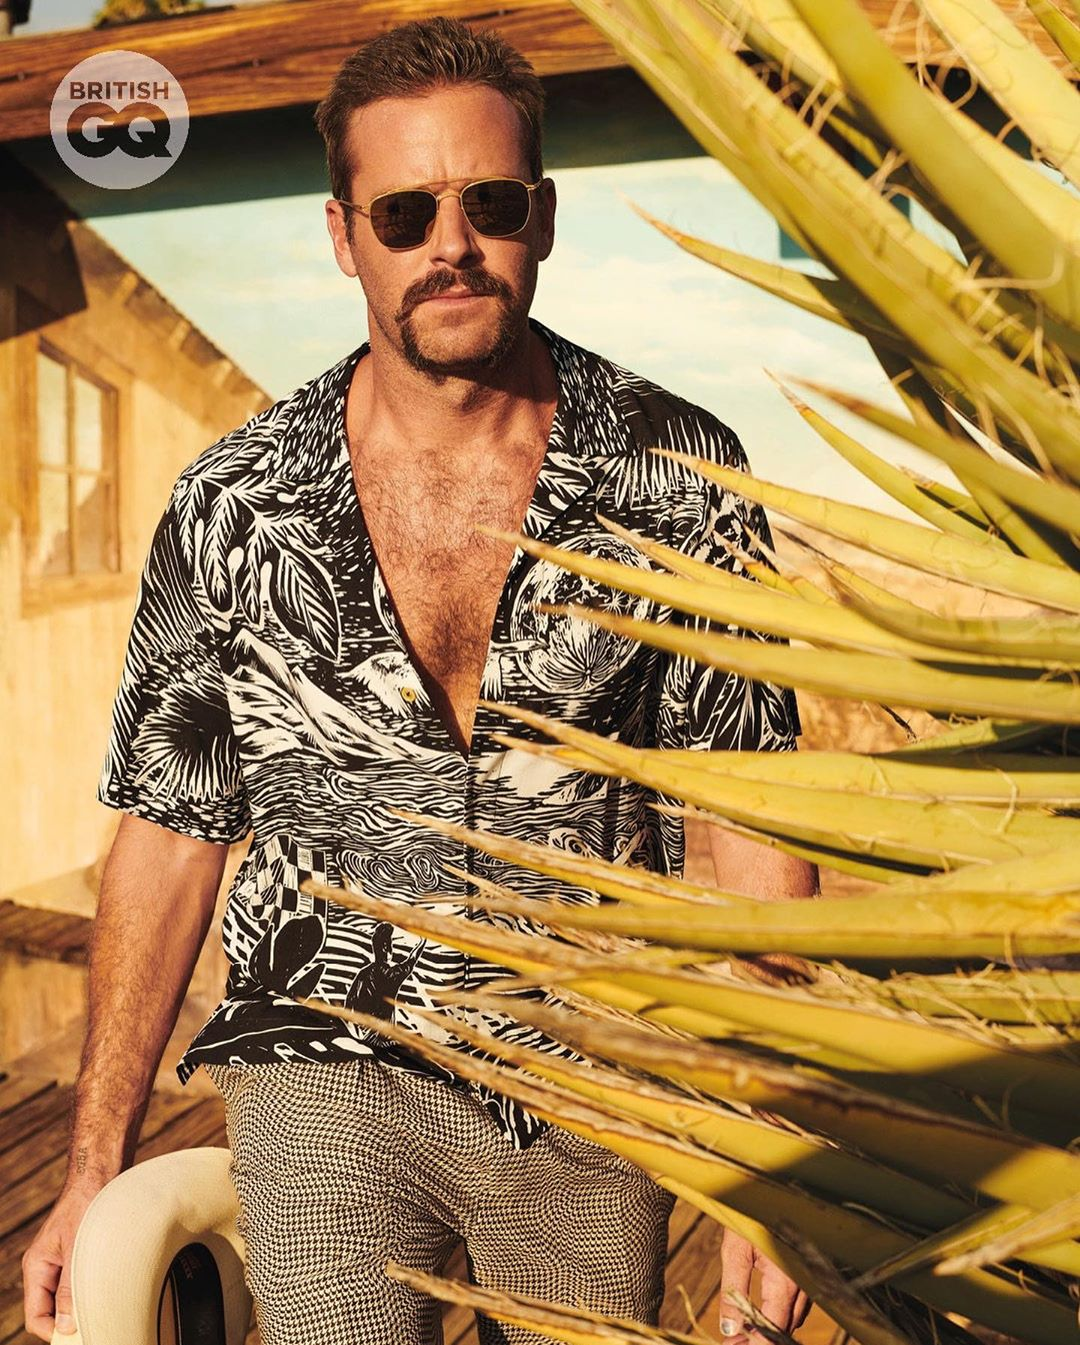 Armie Hammer for British GQ